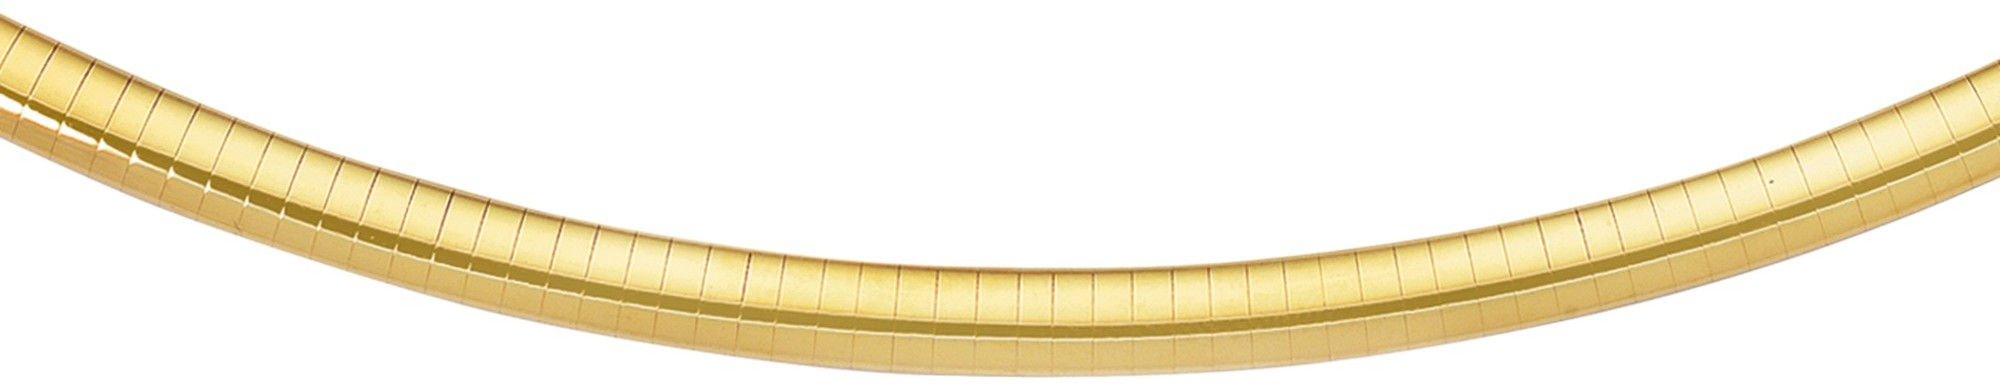 "20"" 14K Yellow Gold 6.0mm (1/4"") Polish Diamond Cut Classic Omega Necklace w/ Box Catch"